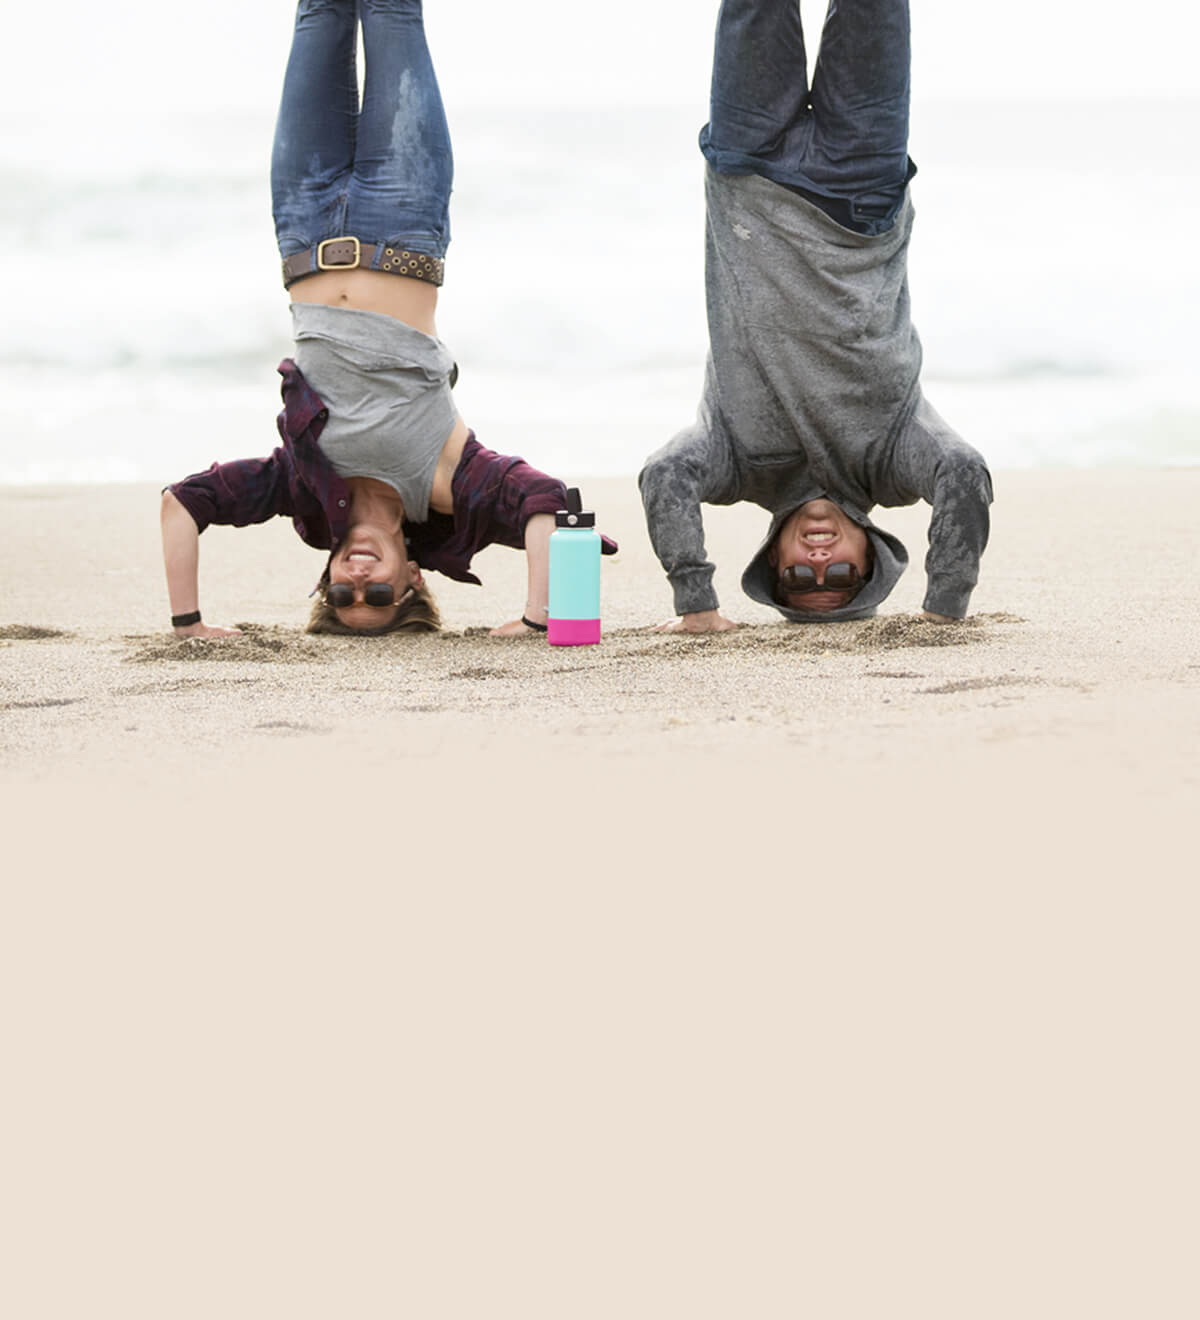 Two friends handstand on the beach with their 32 oz Hydro Flask equipped with a Boot for extra protection.